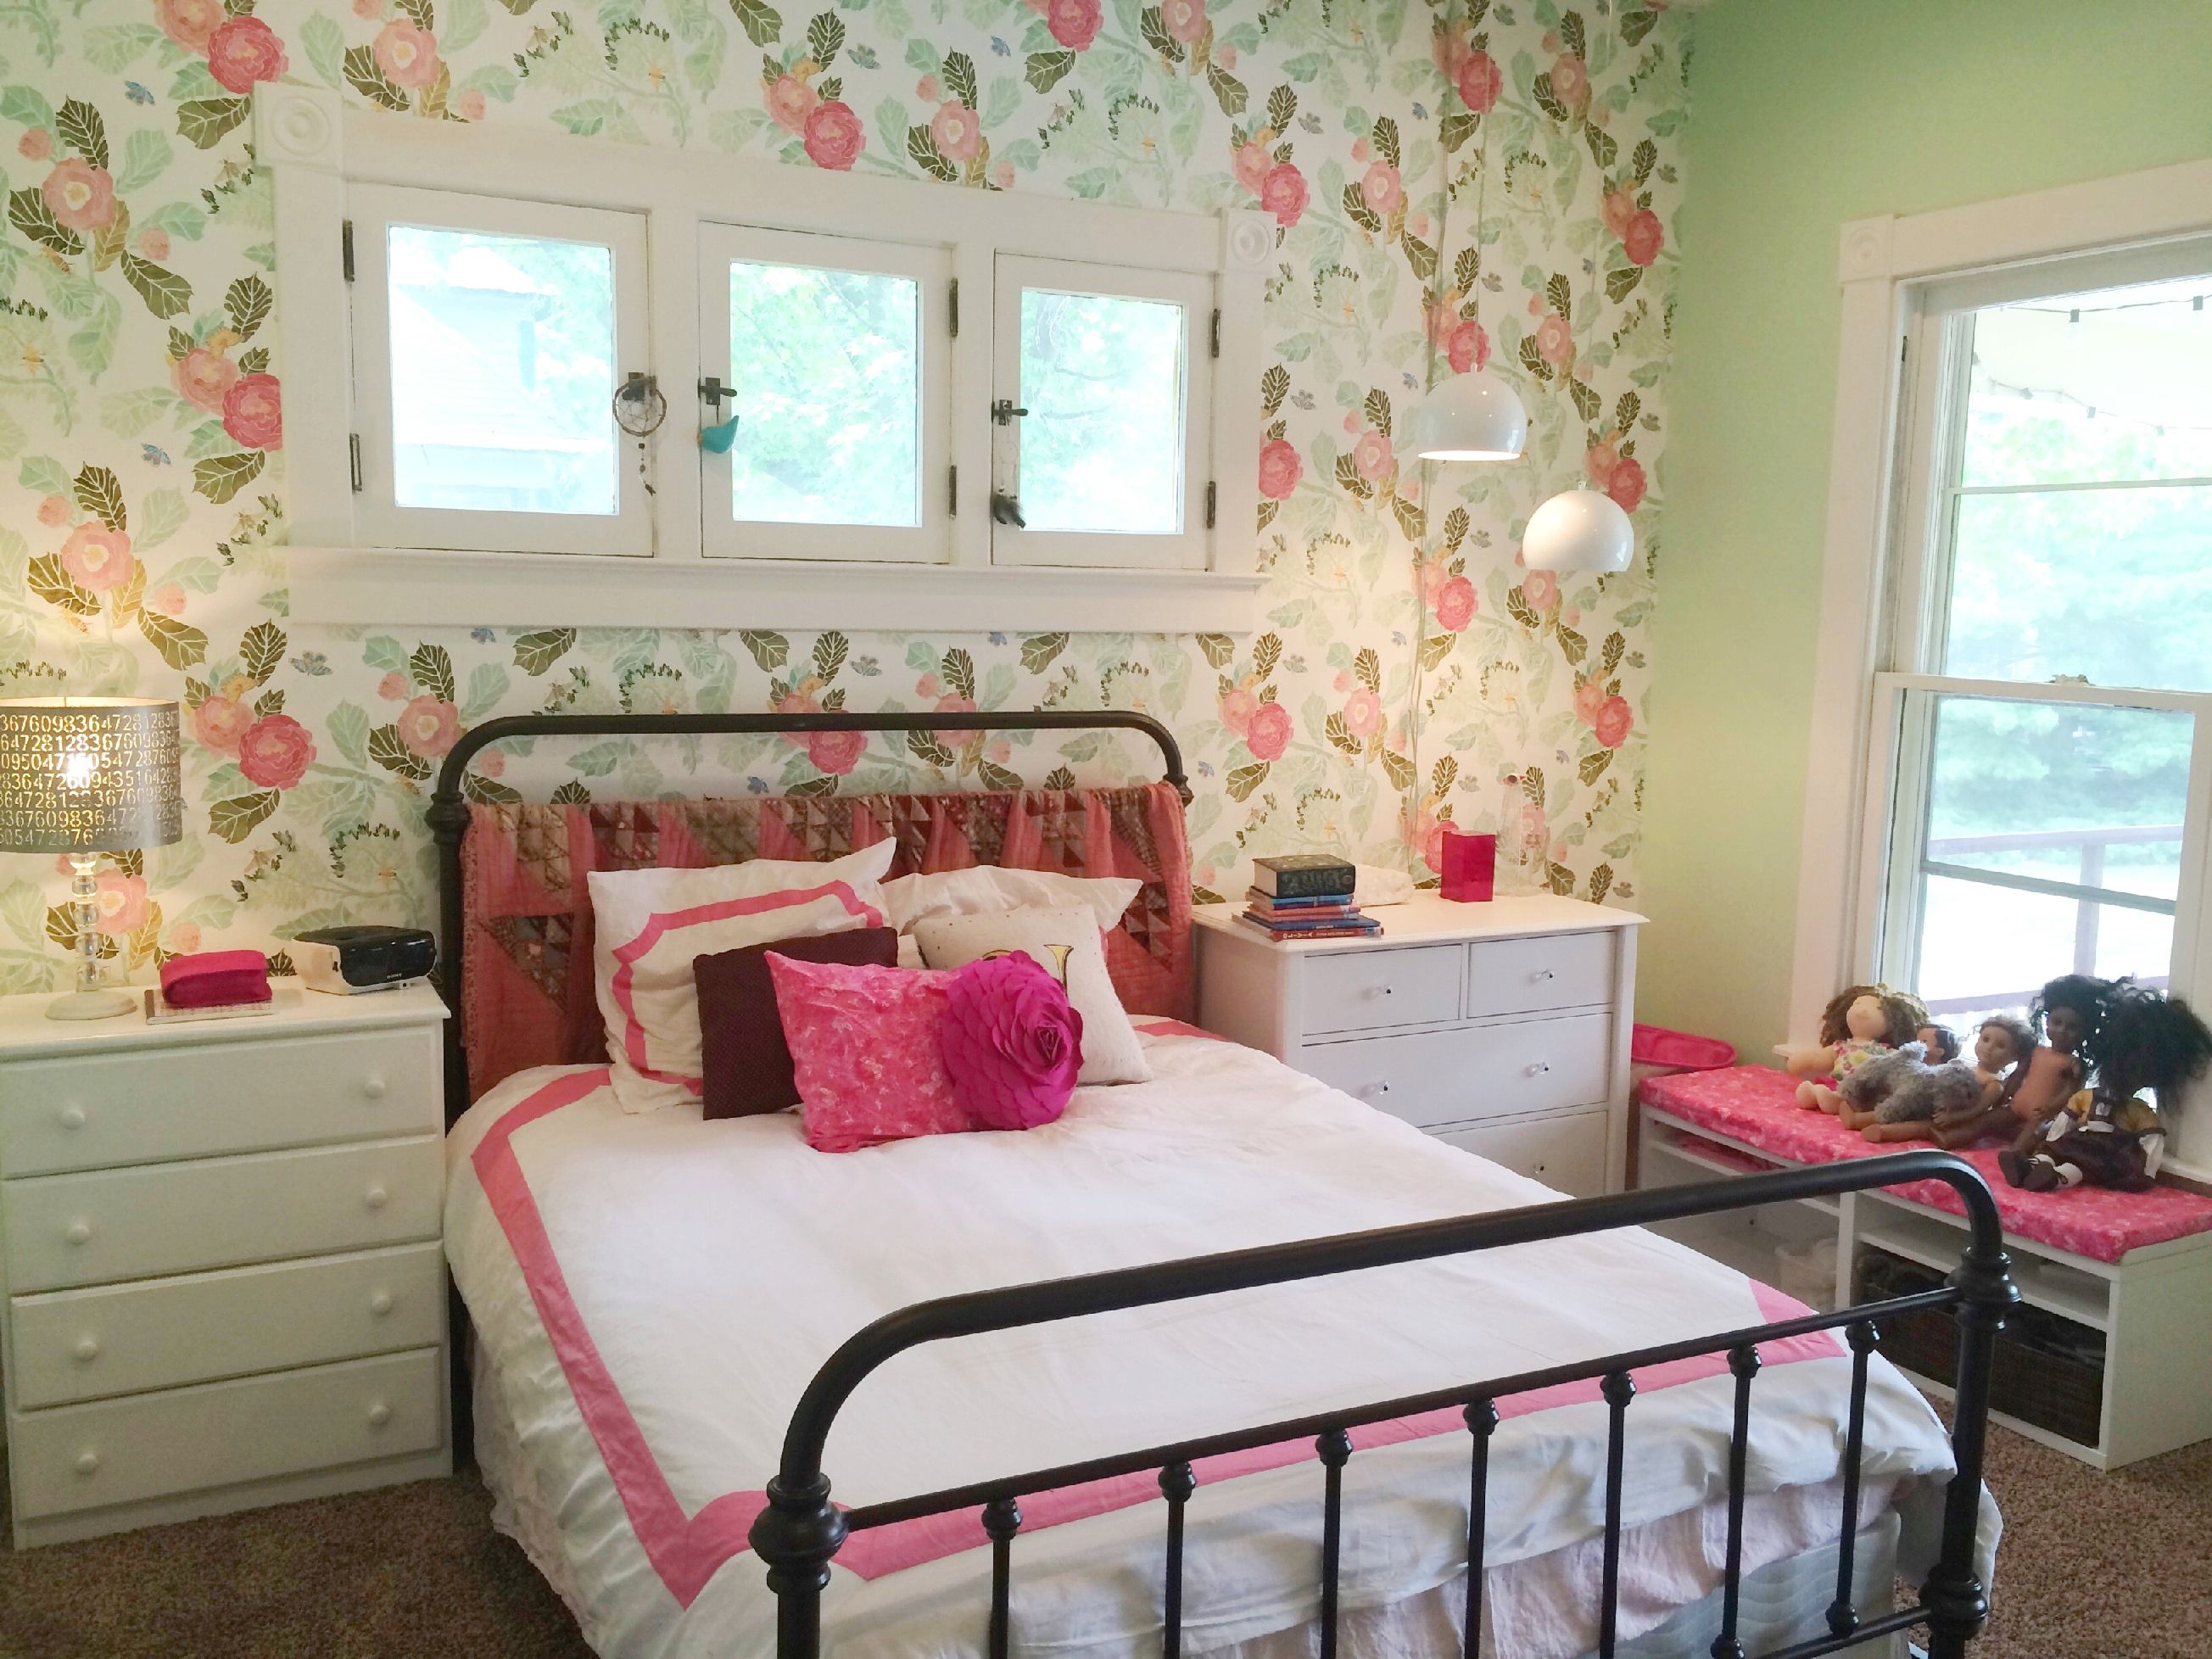 Watercolor peony wallpaper from Anthropologie lamp base and shade